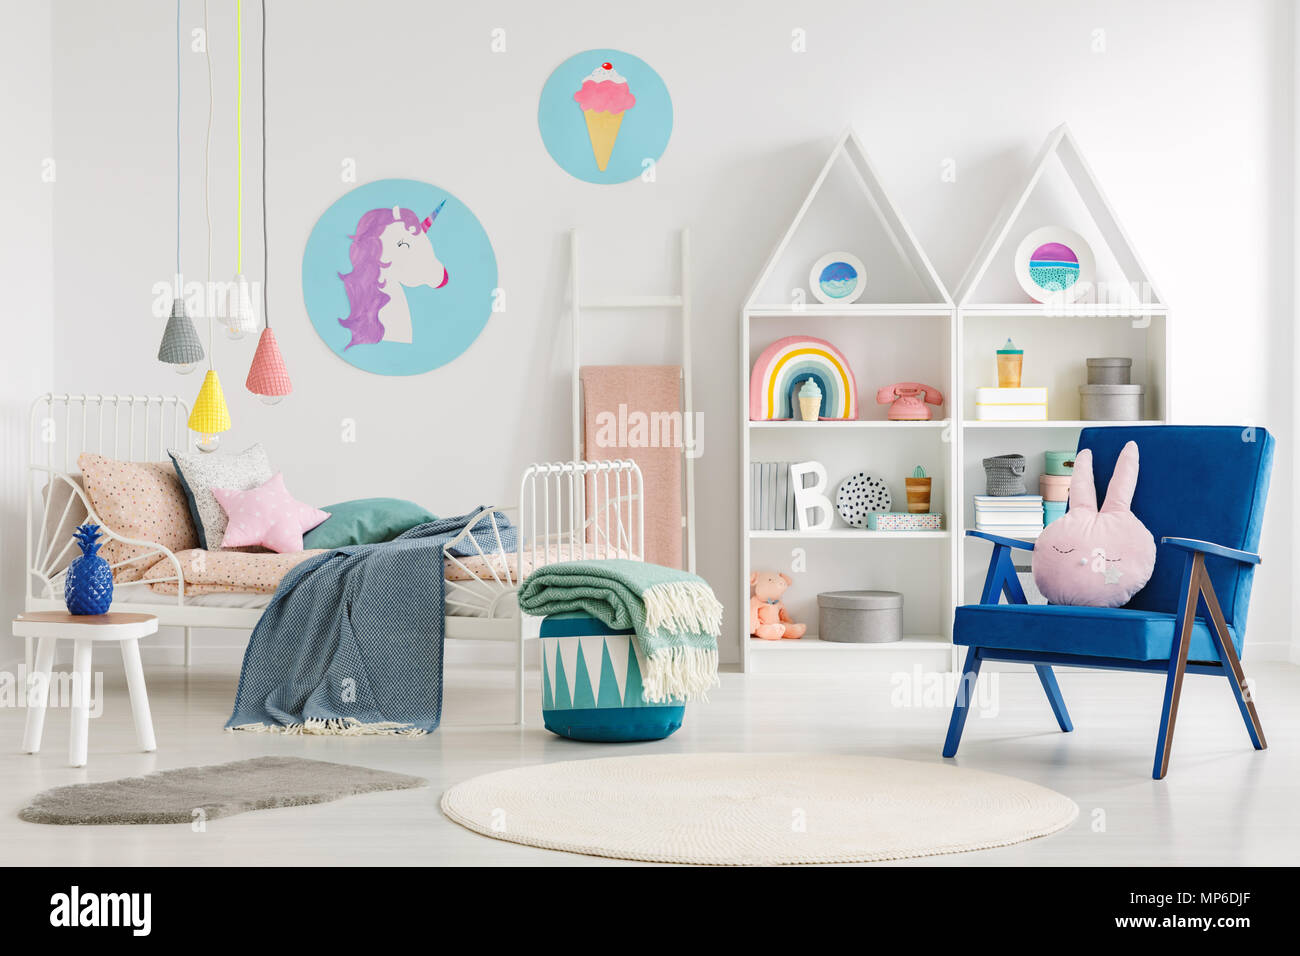 Sweet bedroom interior for a kid with a blue armchair, rabbit pillow, bed, unicorn, ice-cream posters and shelves - Stock Image